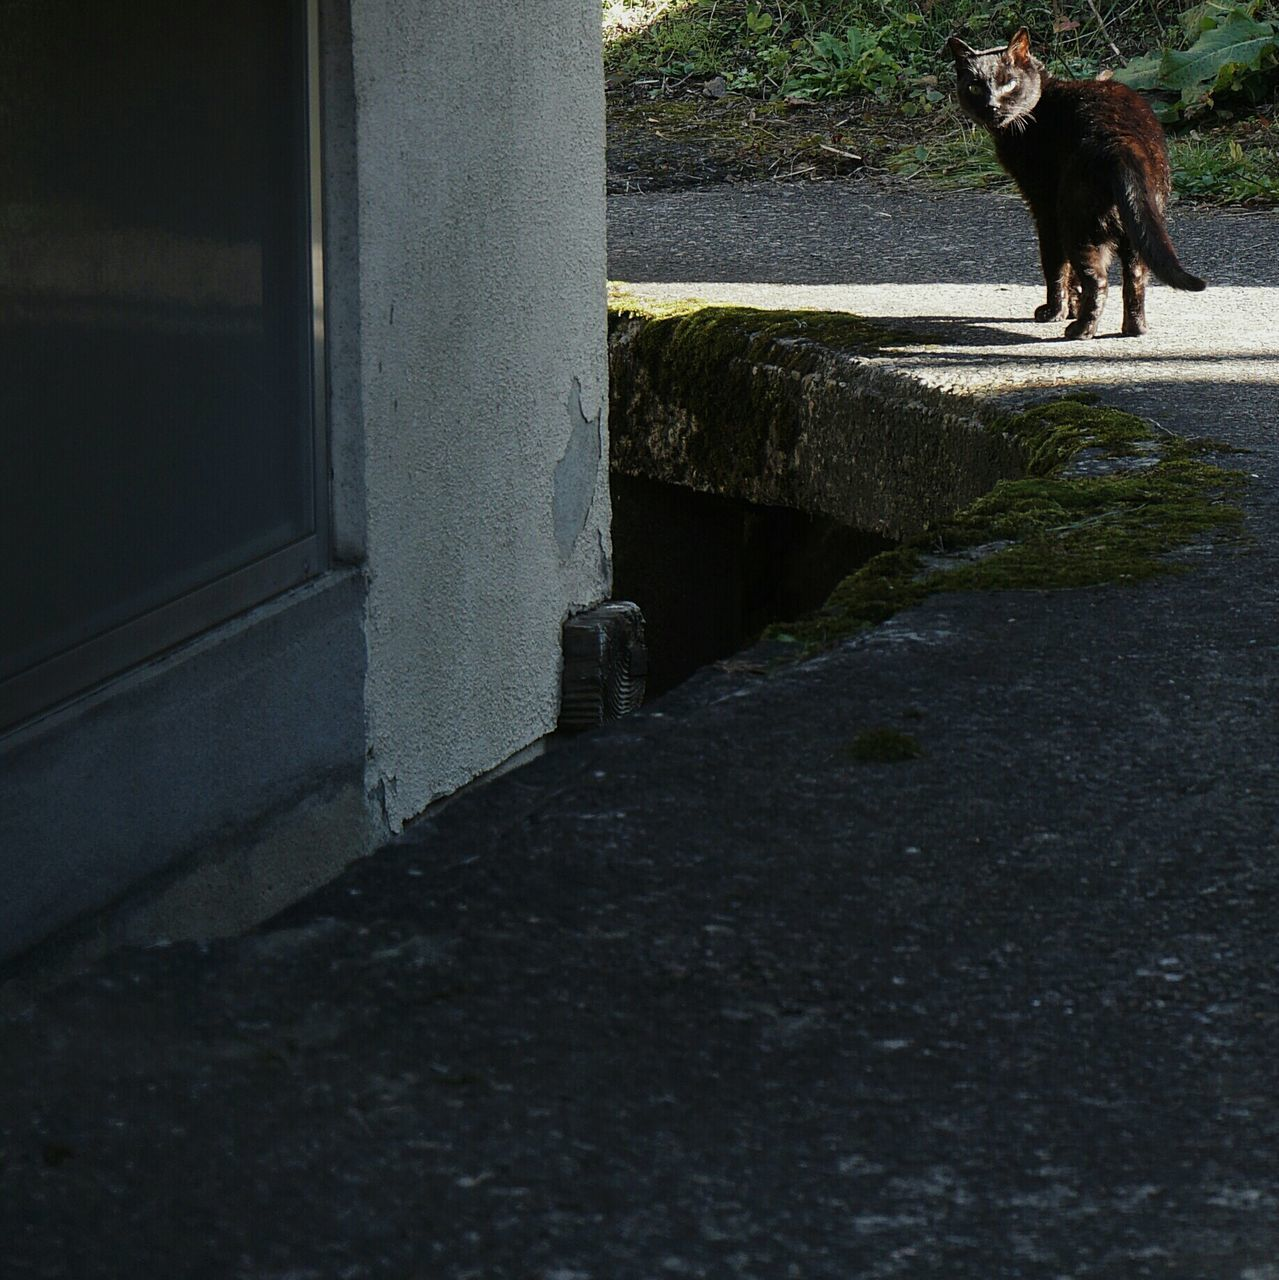 Cat Standing On Walkway By Building